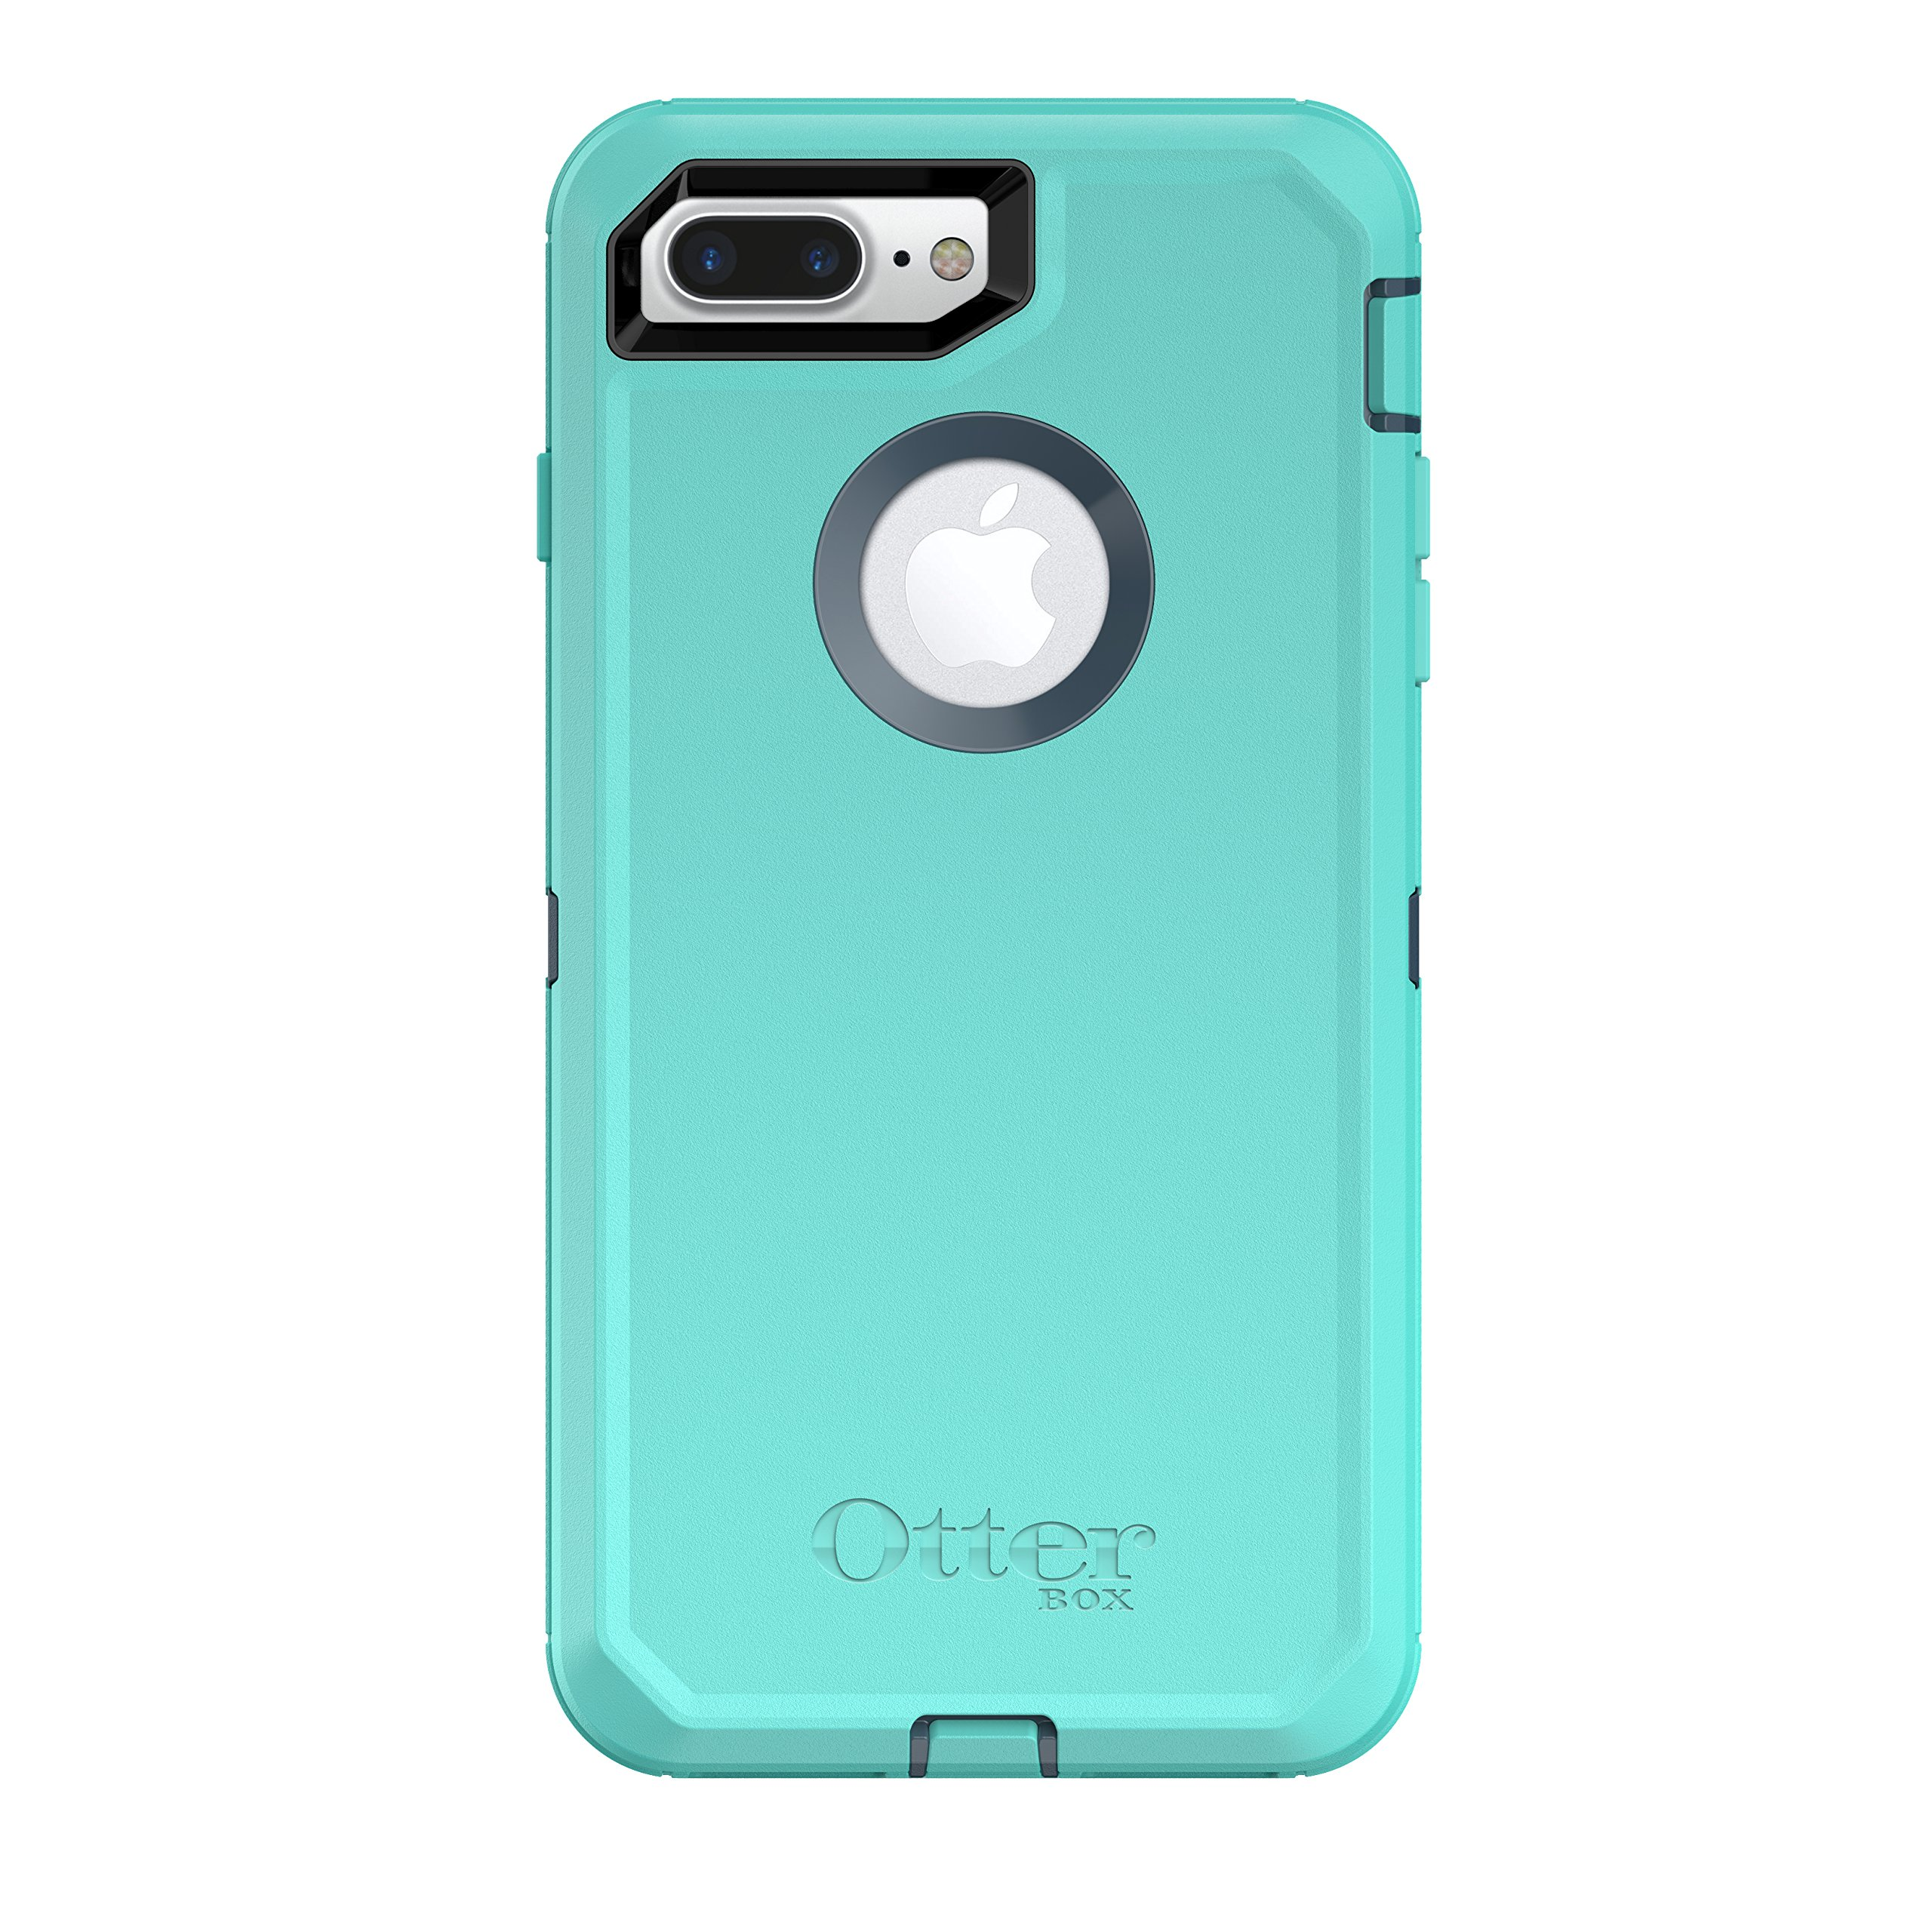 how to get otterbox case free